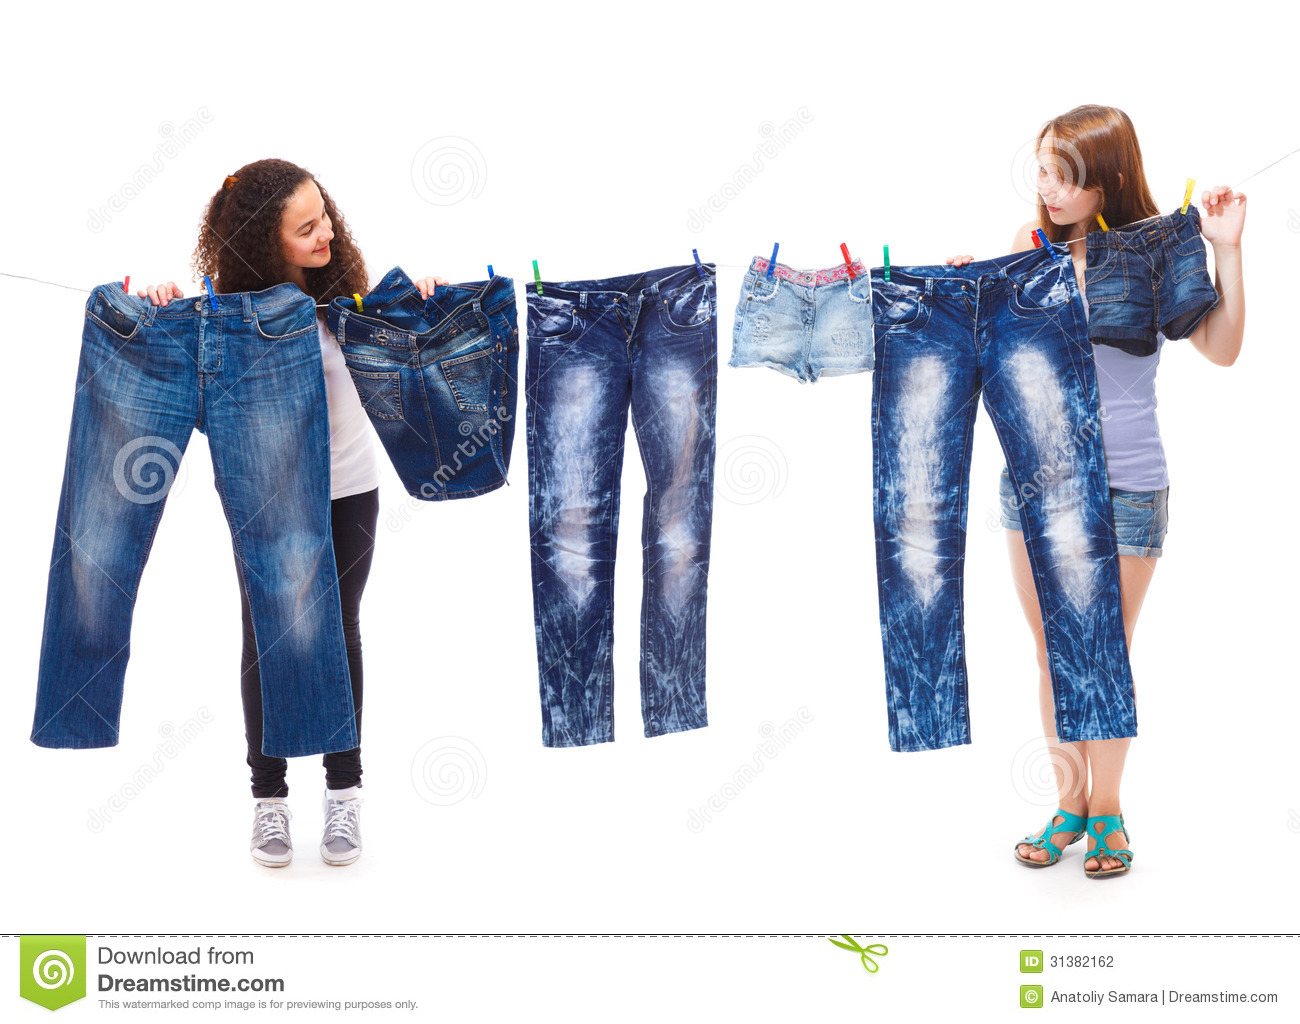 Fashionable Jeans Wear Stock Photography - Image: 31382162